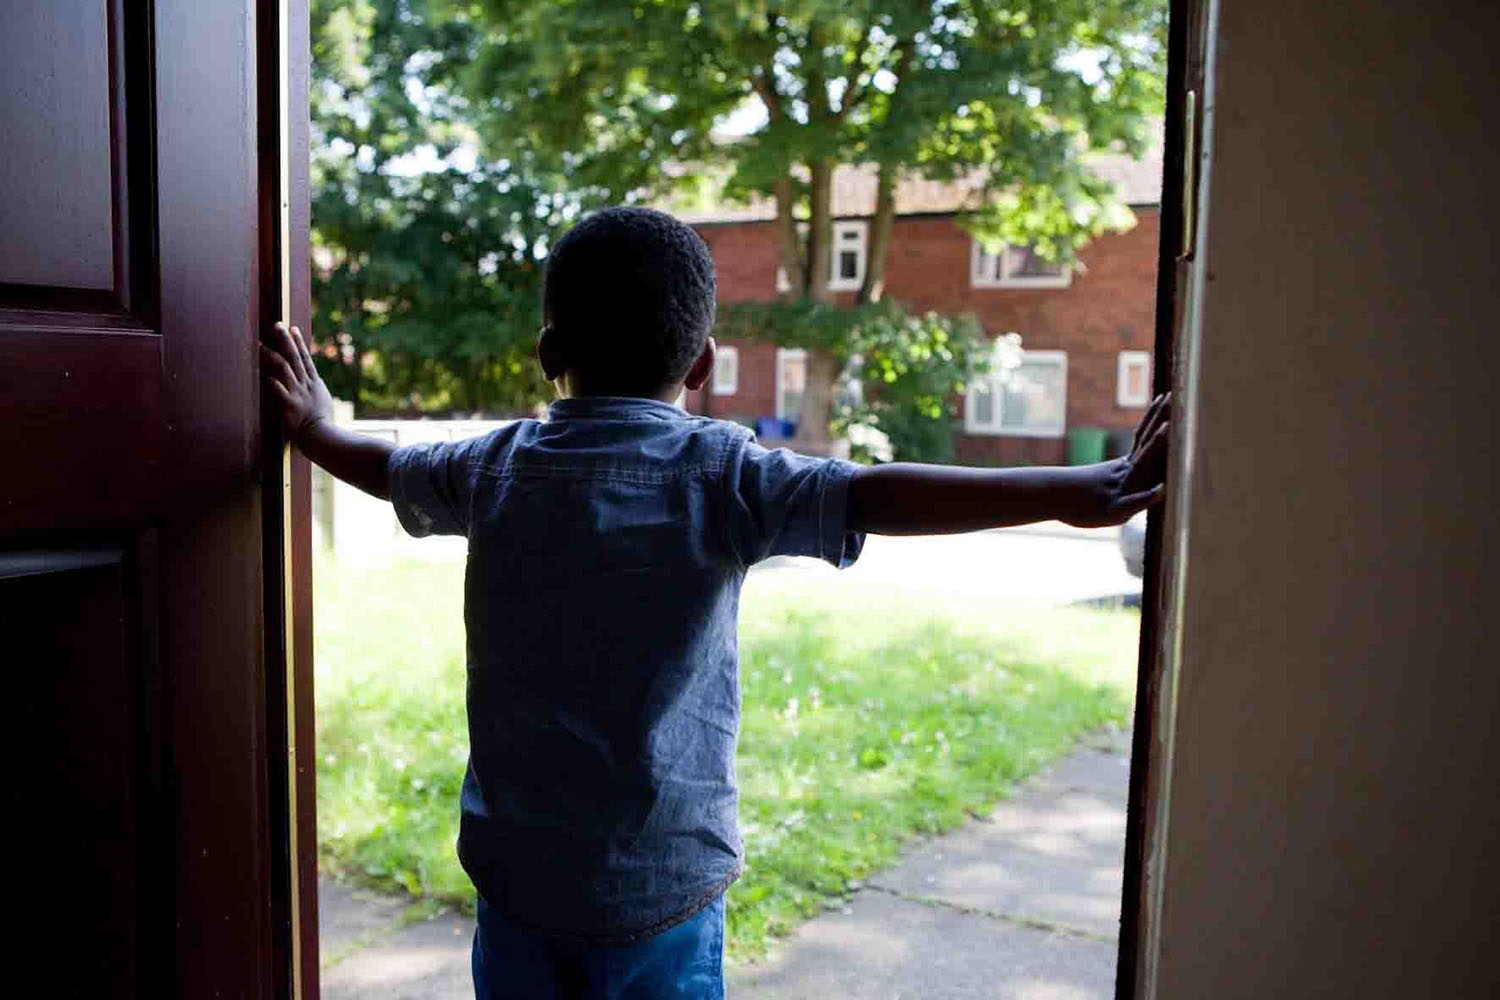 young boy holding open a door and looking out at a bright day